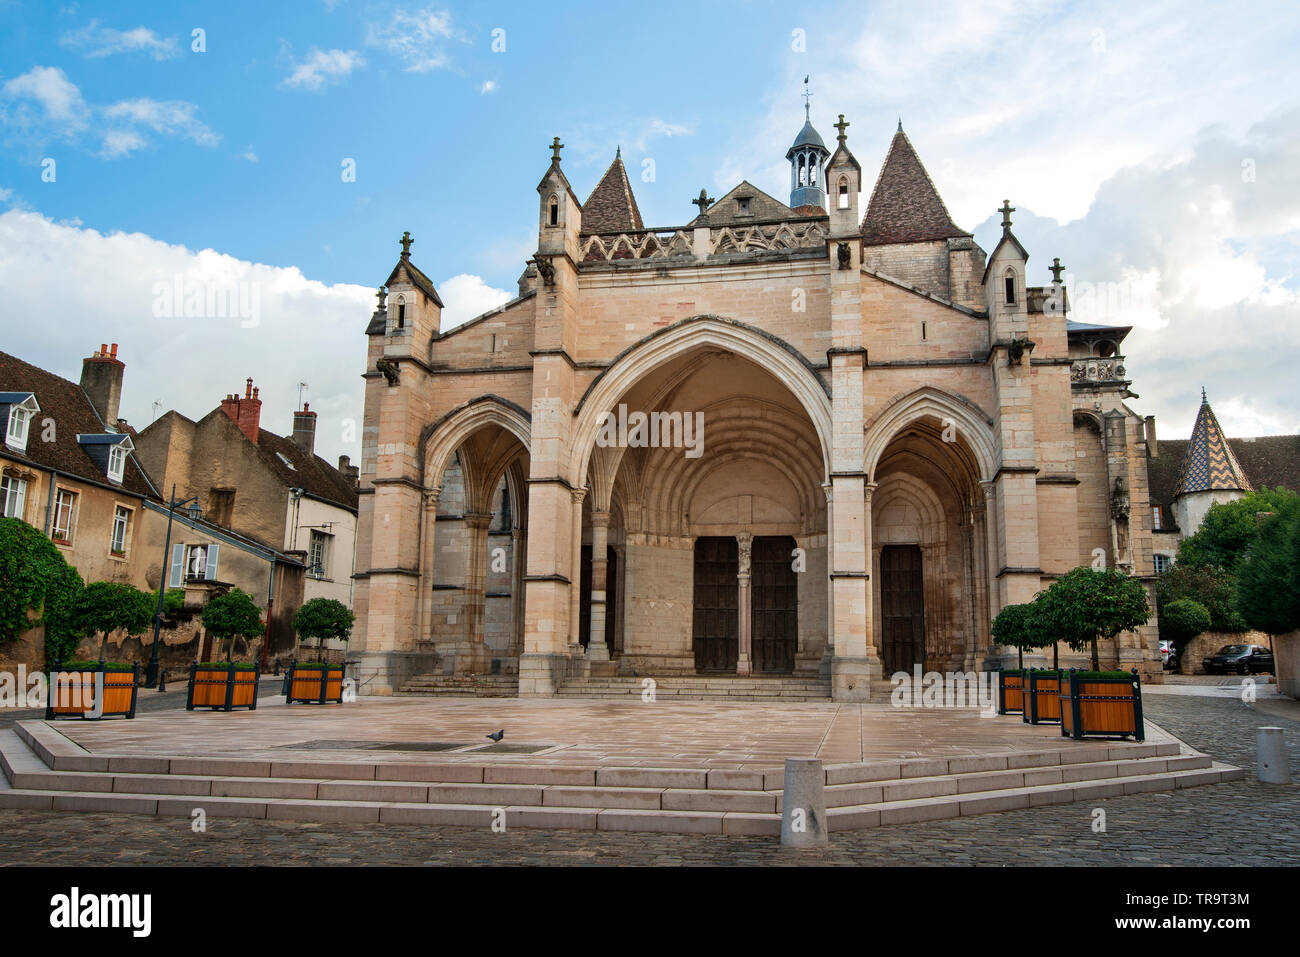 Collegiale Notre Dame in Beaune is a canonical collection dating from the second half of the 12th century, Beaune, Burgundy, France - Stock Image